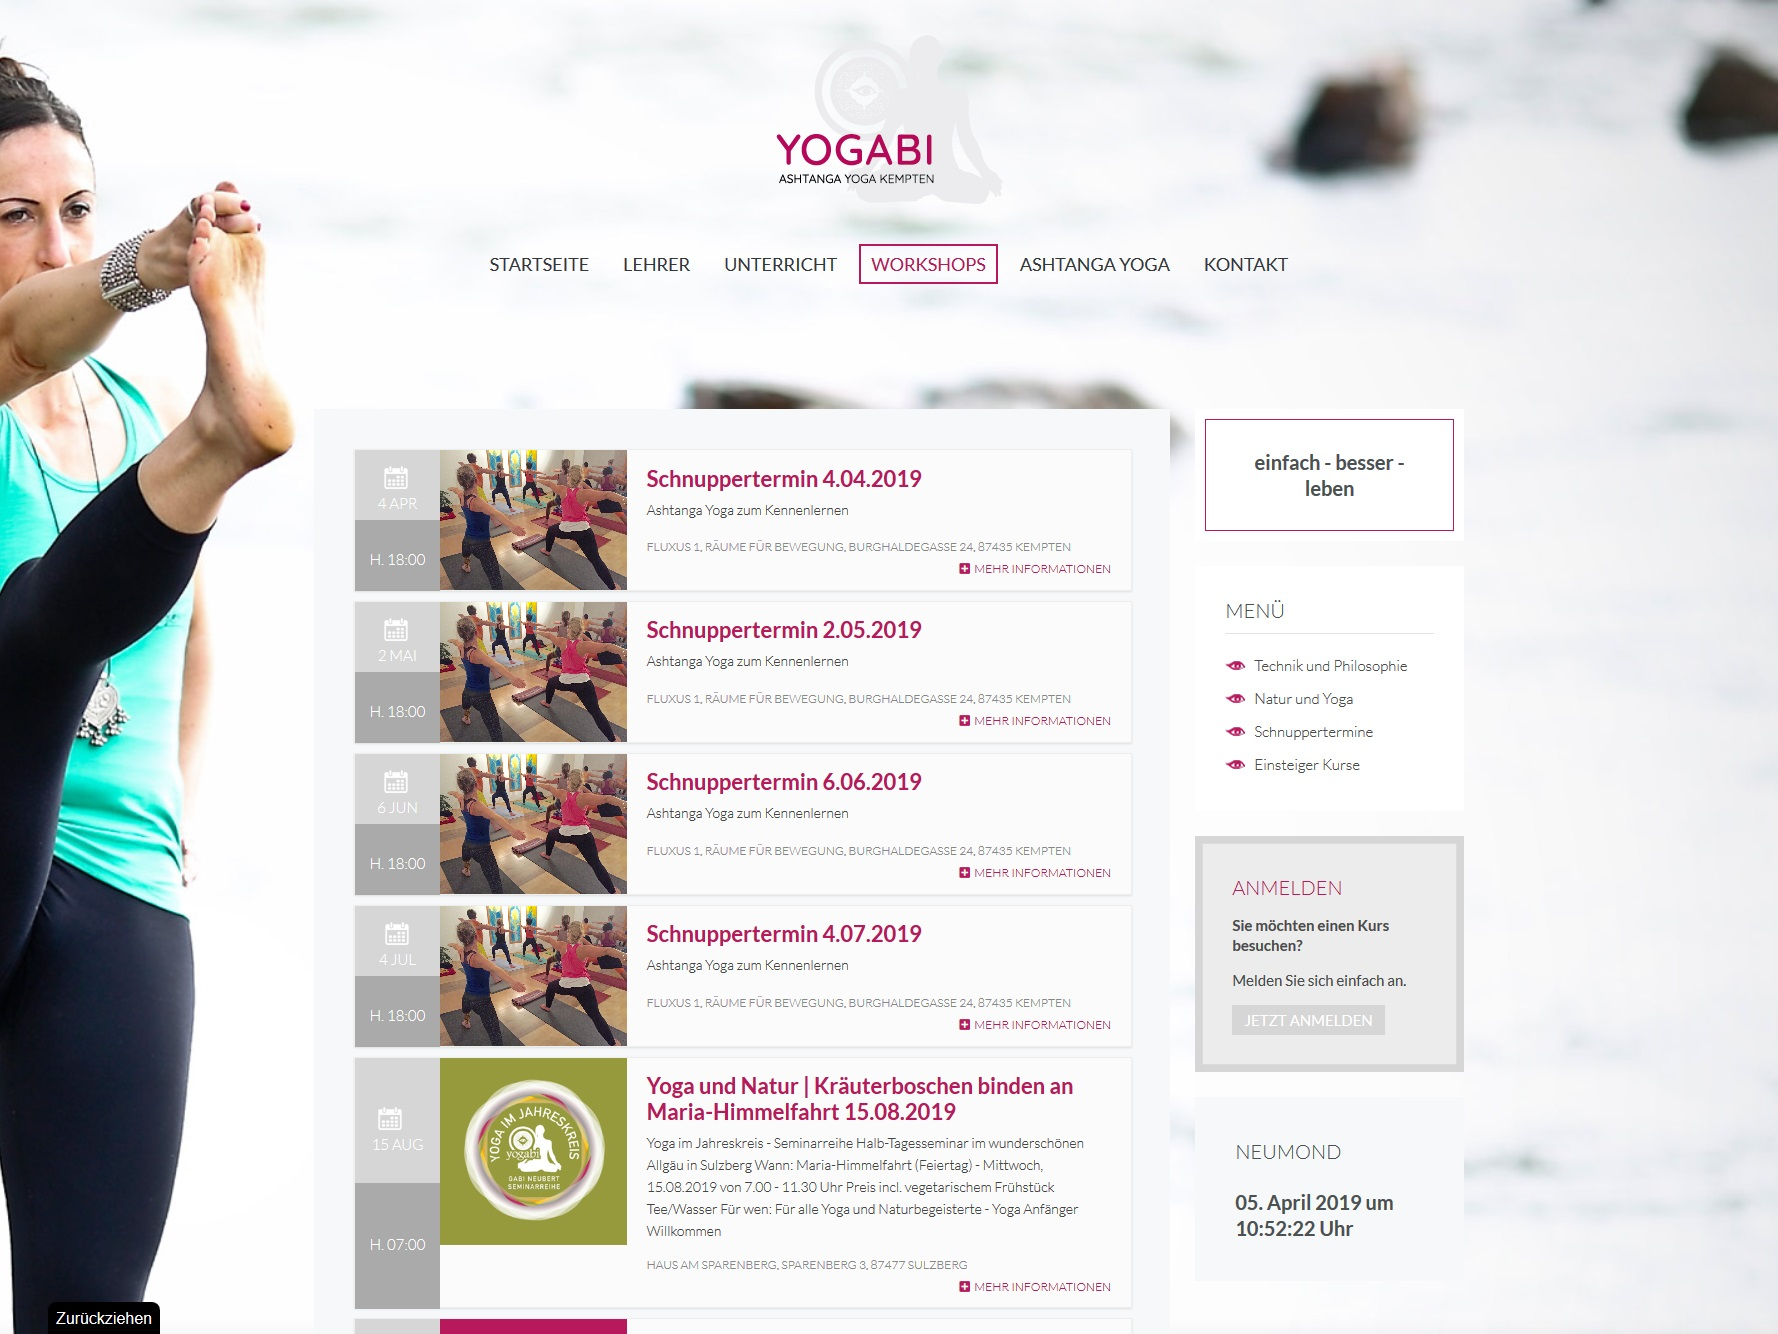 Yogabi Workshops